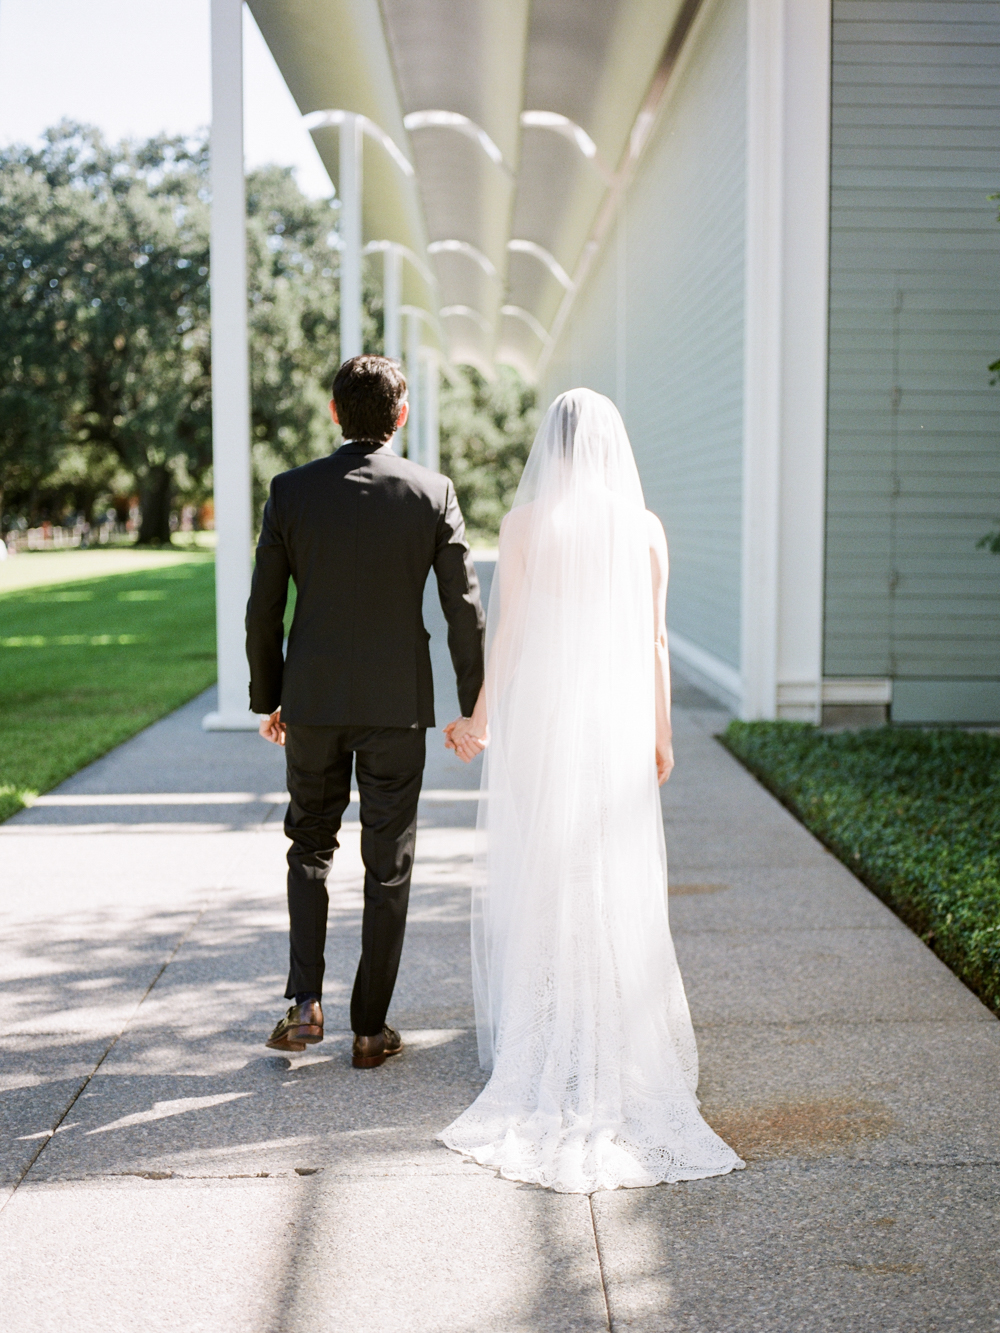 fall wedding at rothko chapel- houston wedding photographer-christine gosch - film photographer - elopement photographer- intimate wedding - lovely bride wedding gown-9.jpg